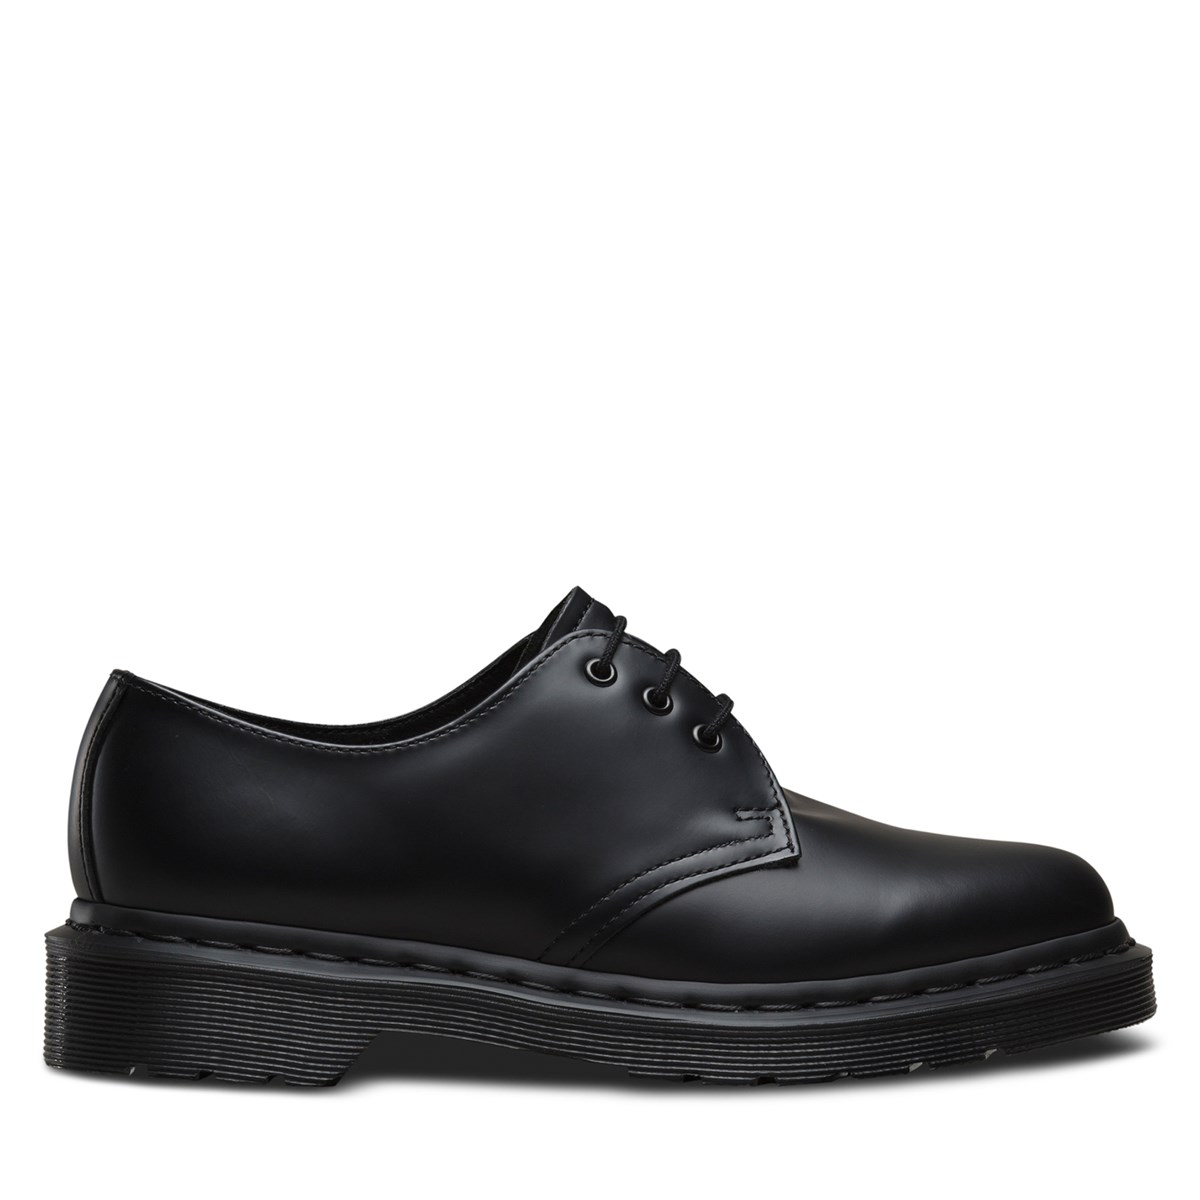 Men's 1461 Mono Shoes in Black